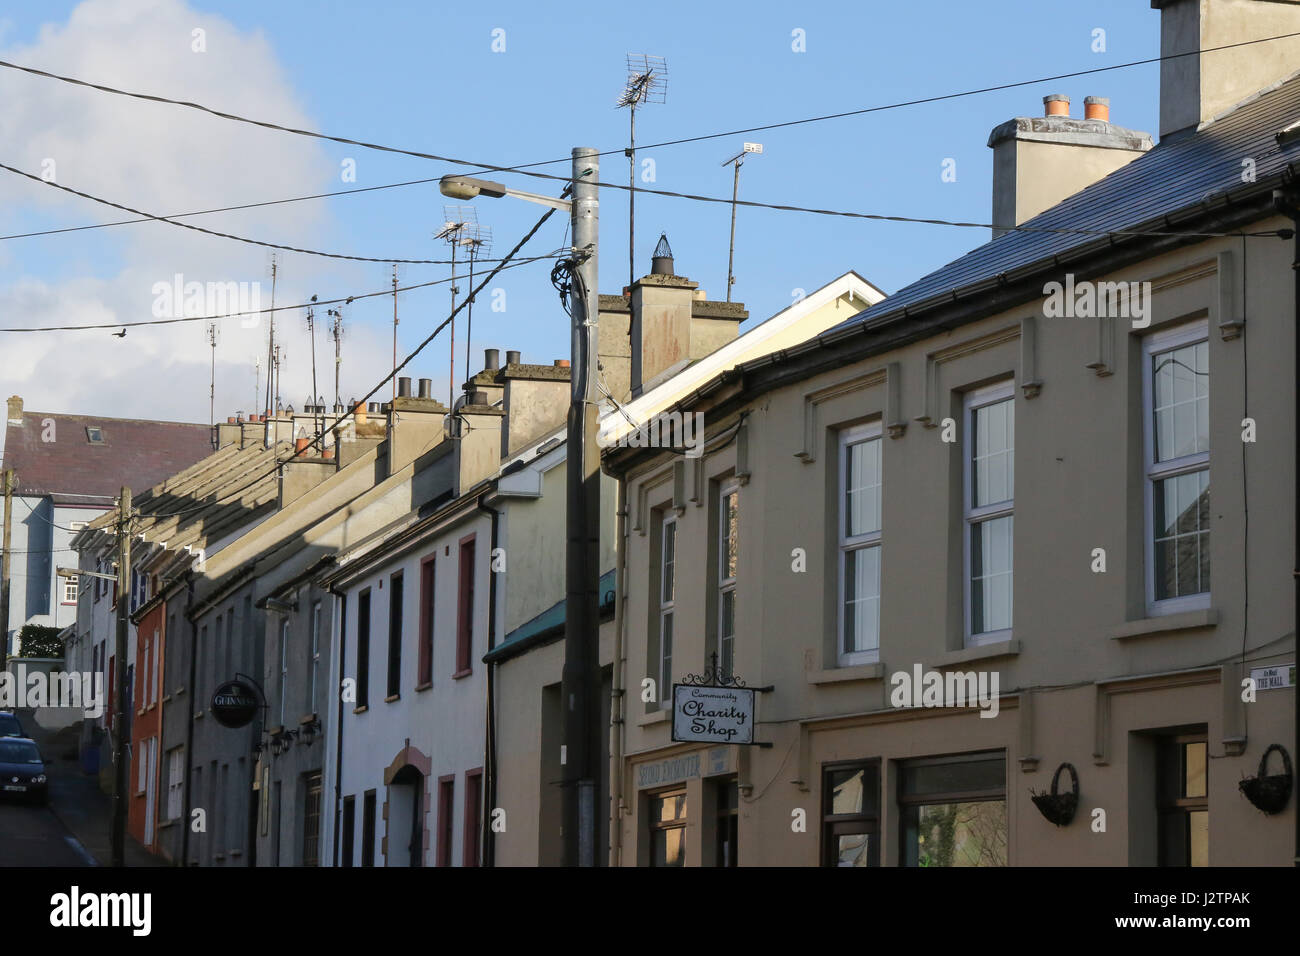 Chimneys and aerials on row of terrace houses in Ramelton, County Donegal, Ireland. - Stock Image